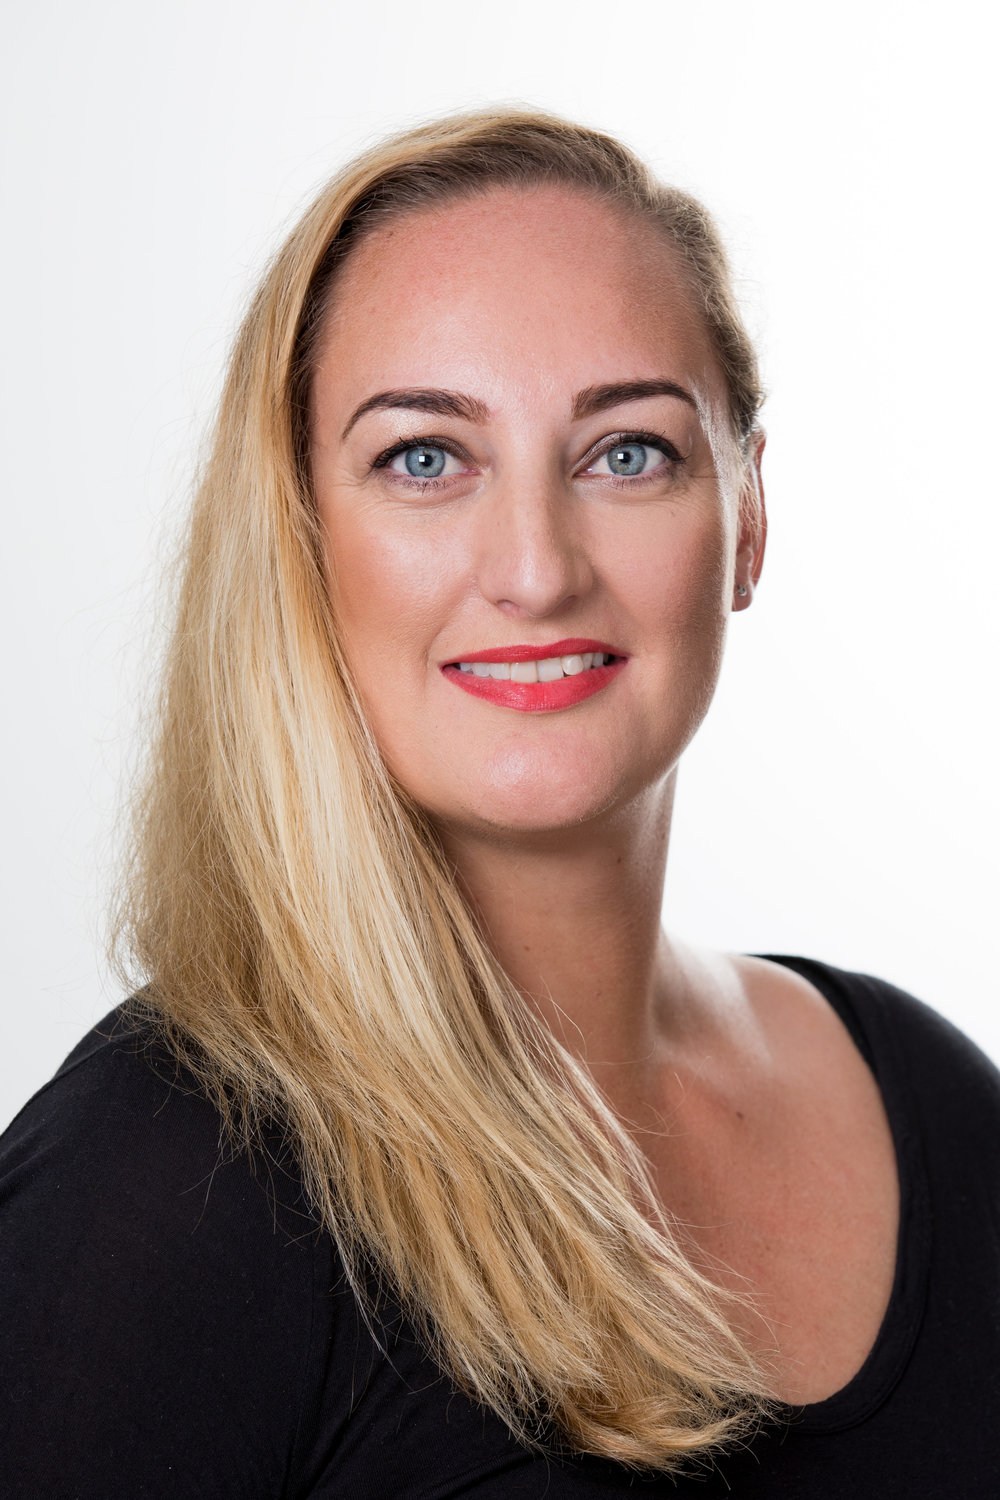 RACHELLE - Receptionist/2ICI trained as a beauty therapist in 1997, and worked as a facialist and massage therapist on board the Star Princess. From there I went on to work in Pharmacy where I held numerous roles including management. Over the past twenty-five years my experience in the beauty industry has been wide spread and I have loved every moment of it.  I have two beautiful children who keep me on my toes and are the light of my life. My success in the beauty industry is largely due to my passion for skin and makeup. I love people and making sure they are well looked after and will endeavour to make your experience at Bloom fantastic.